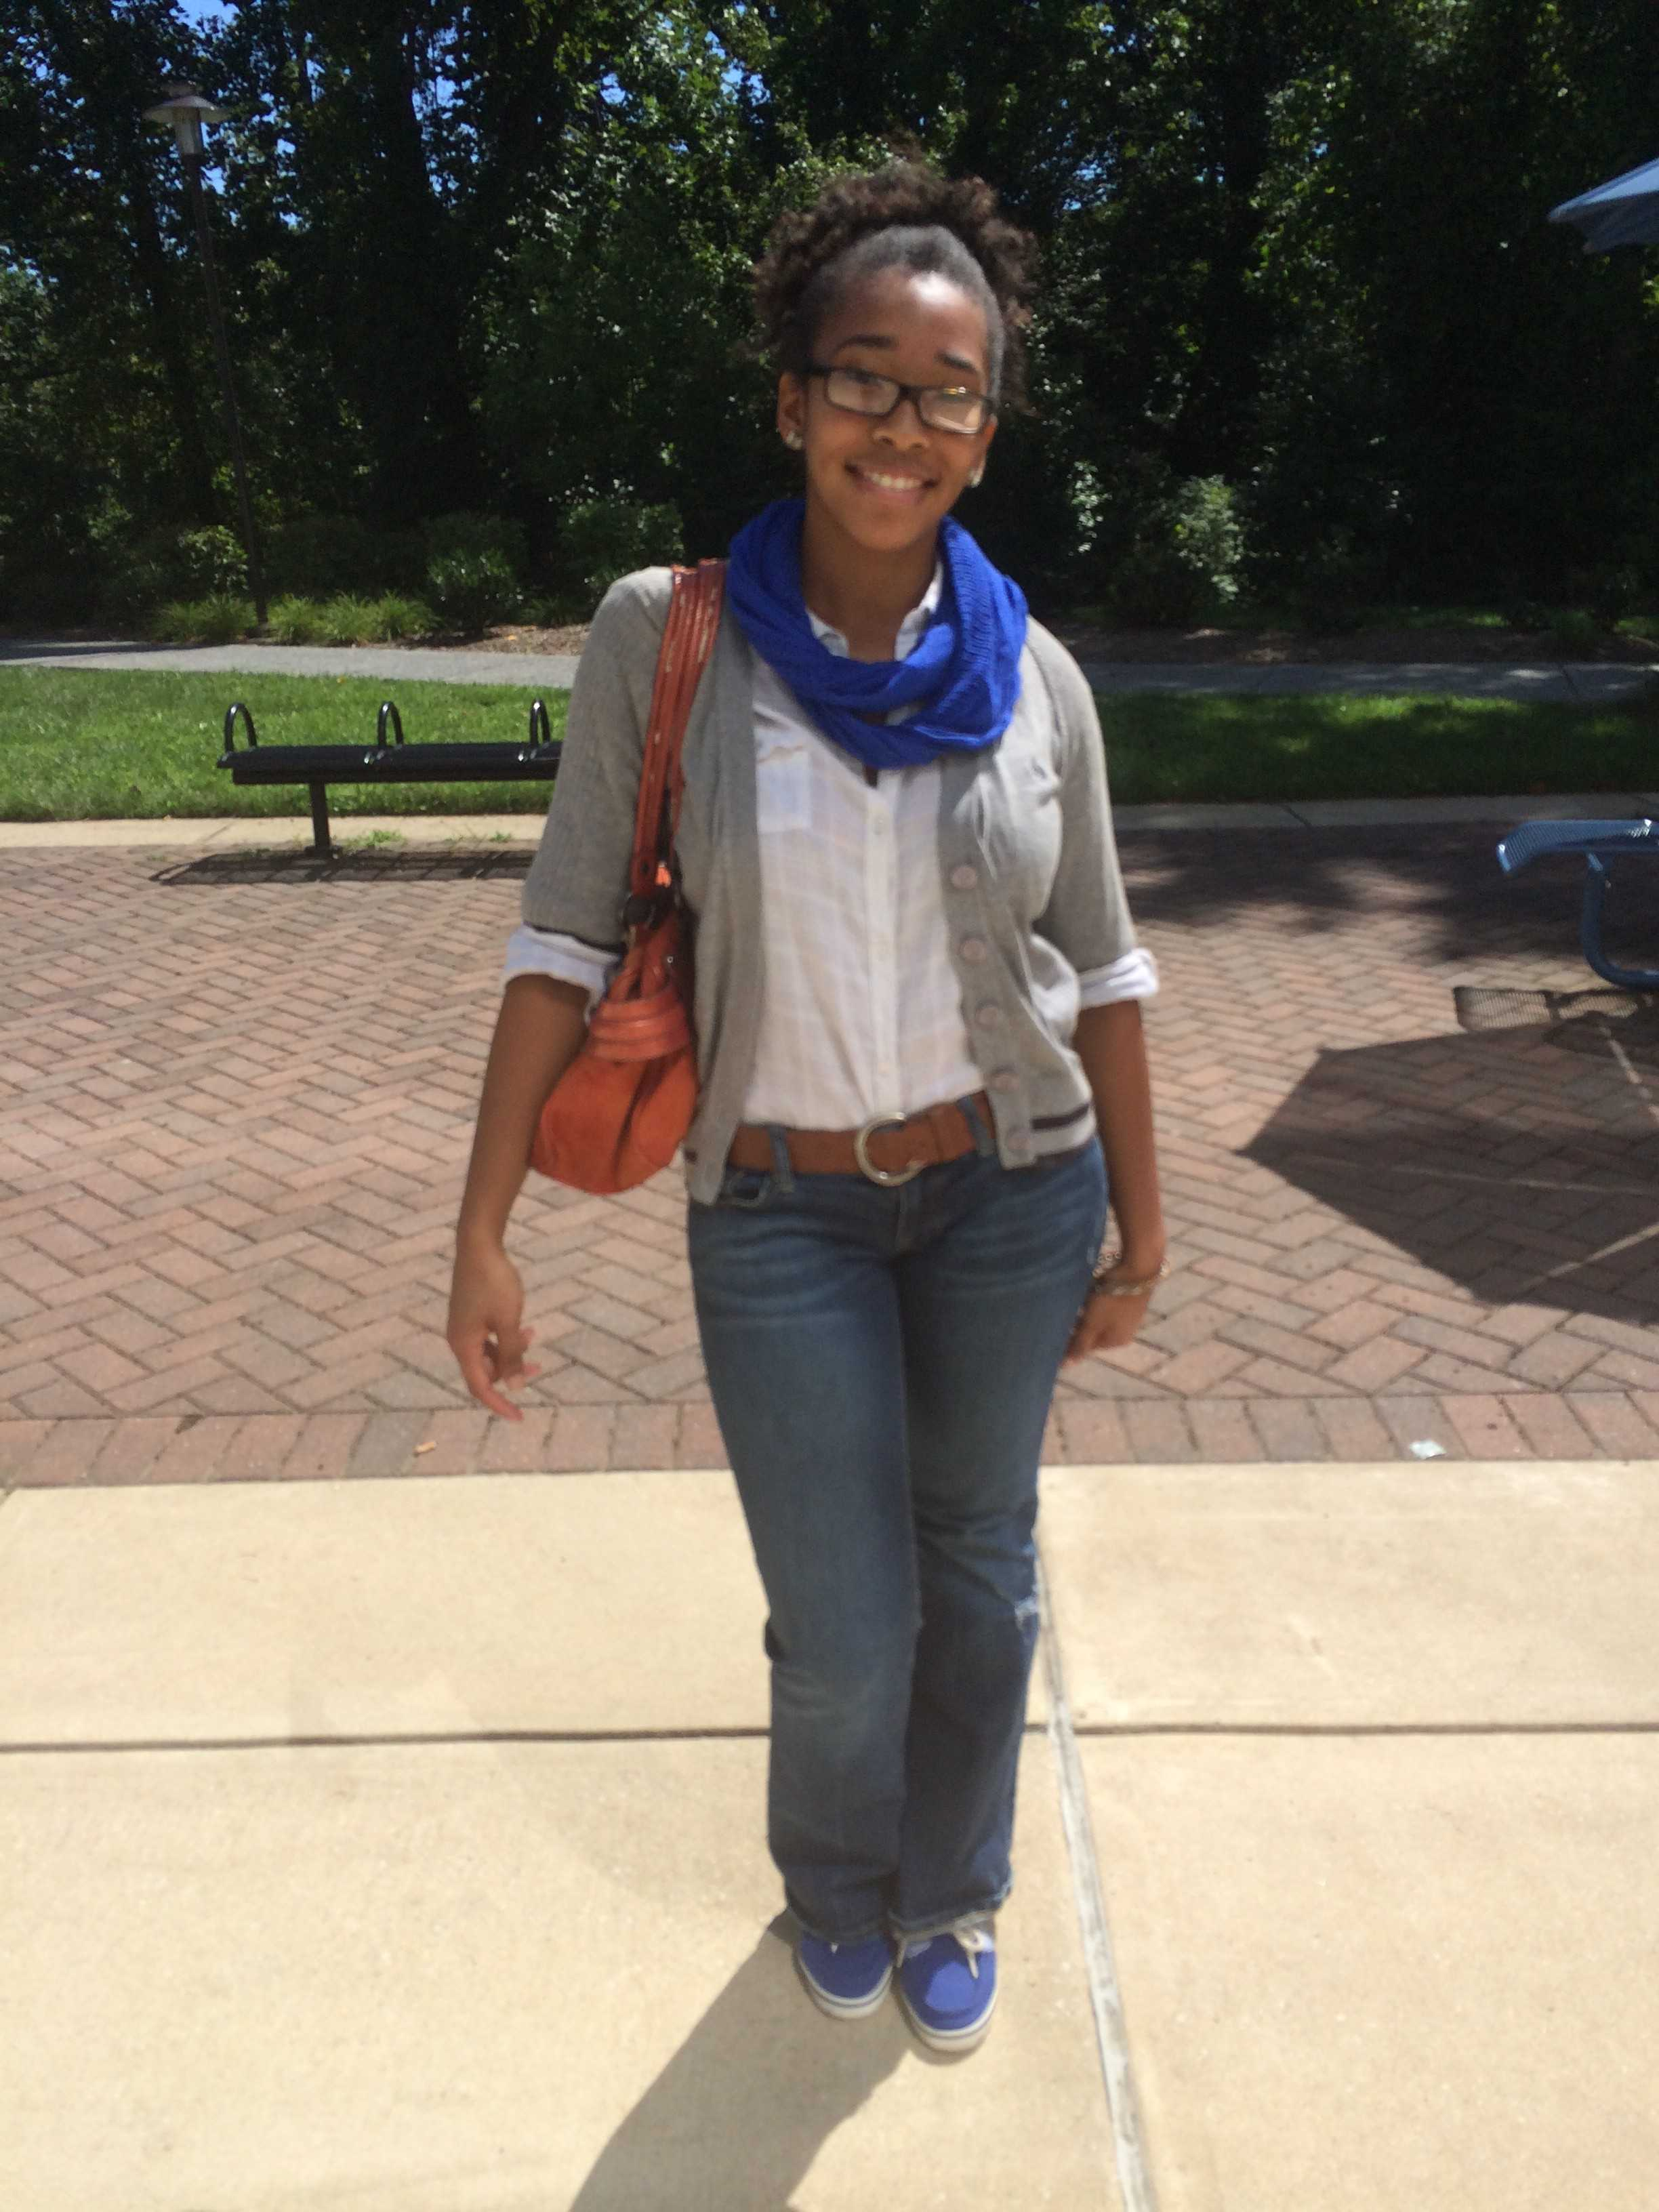 """Ahjahnae LaQuer, a senior Journalism major from New Jersey said that the best thing that happened over the summer was """"falling in love."""" The worst thing? """"There wasn't anything bad."""""""